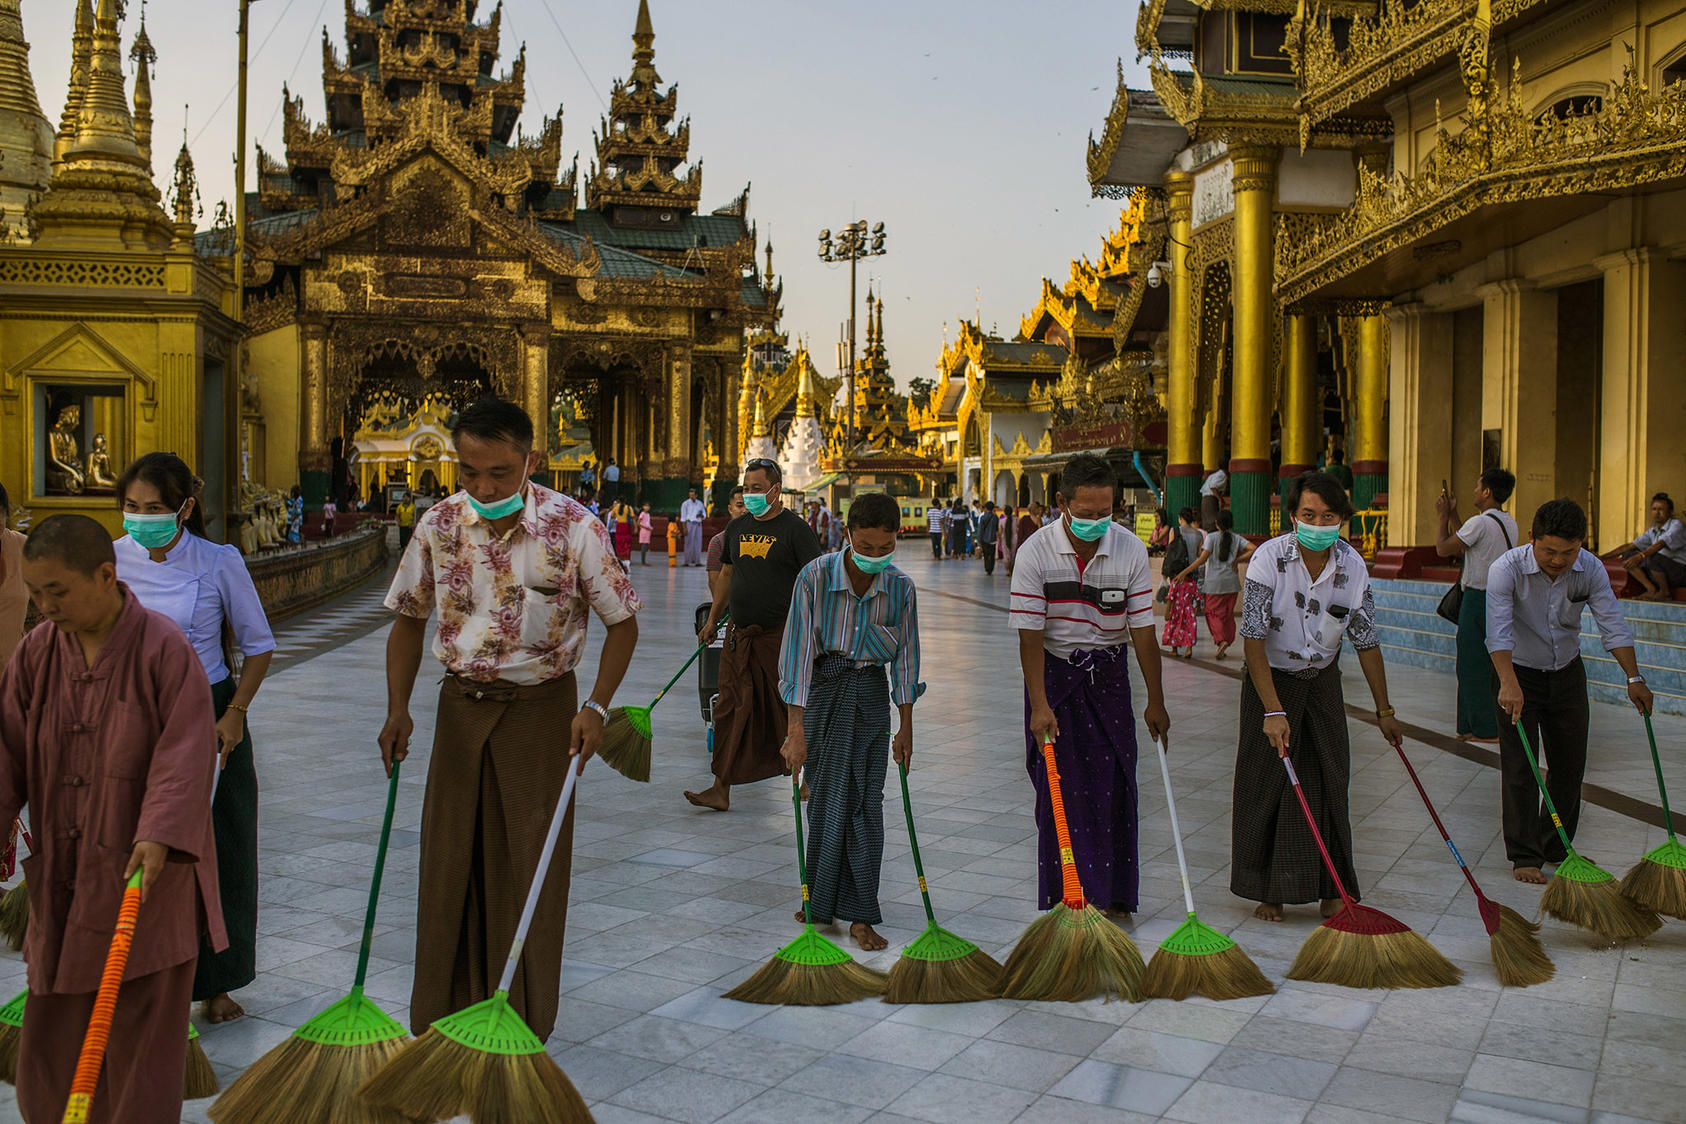 Volunteers, many wearing masks to avoid spreading the COVID19 virus, sweep walkways at the Shwedagon Pagoda, a Buddhist holy site in Yangon, Myanmar, in March. The virus' spread has since led to the pagoda's closure. (Minzayar Oo/The New York Times)